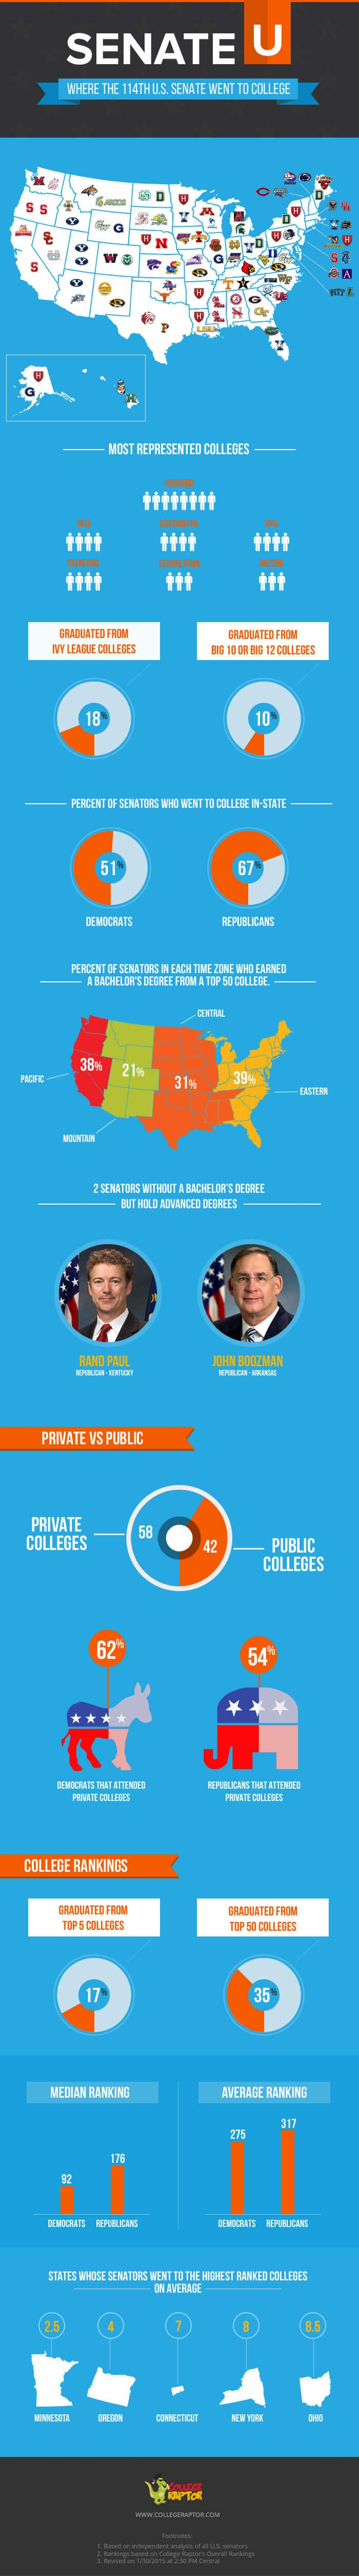 Infographic showing where the U.S. Senate went to college for their undergraduate degrees.